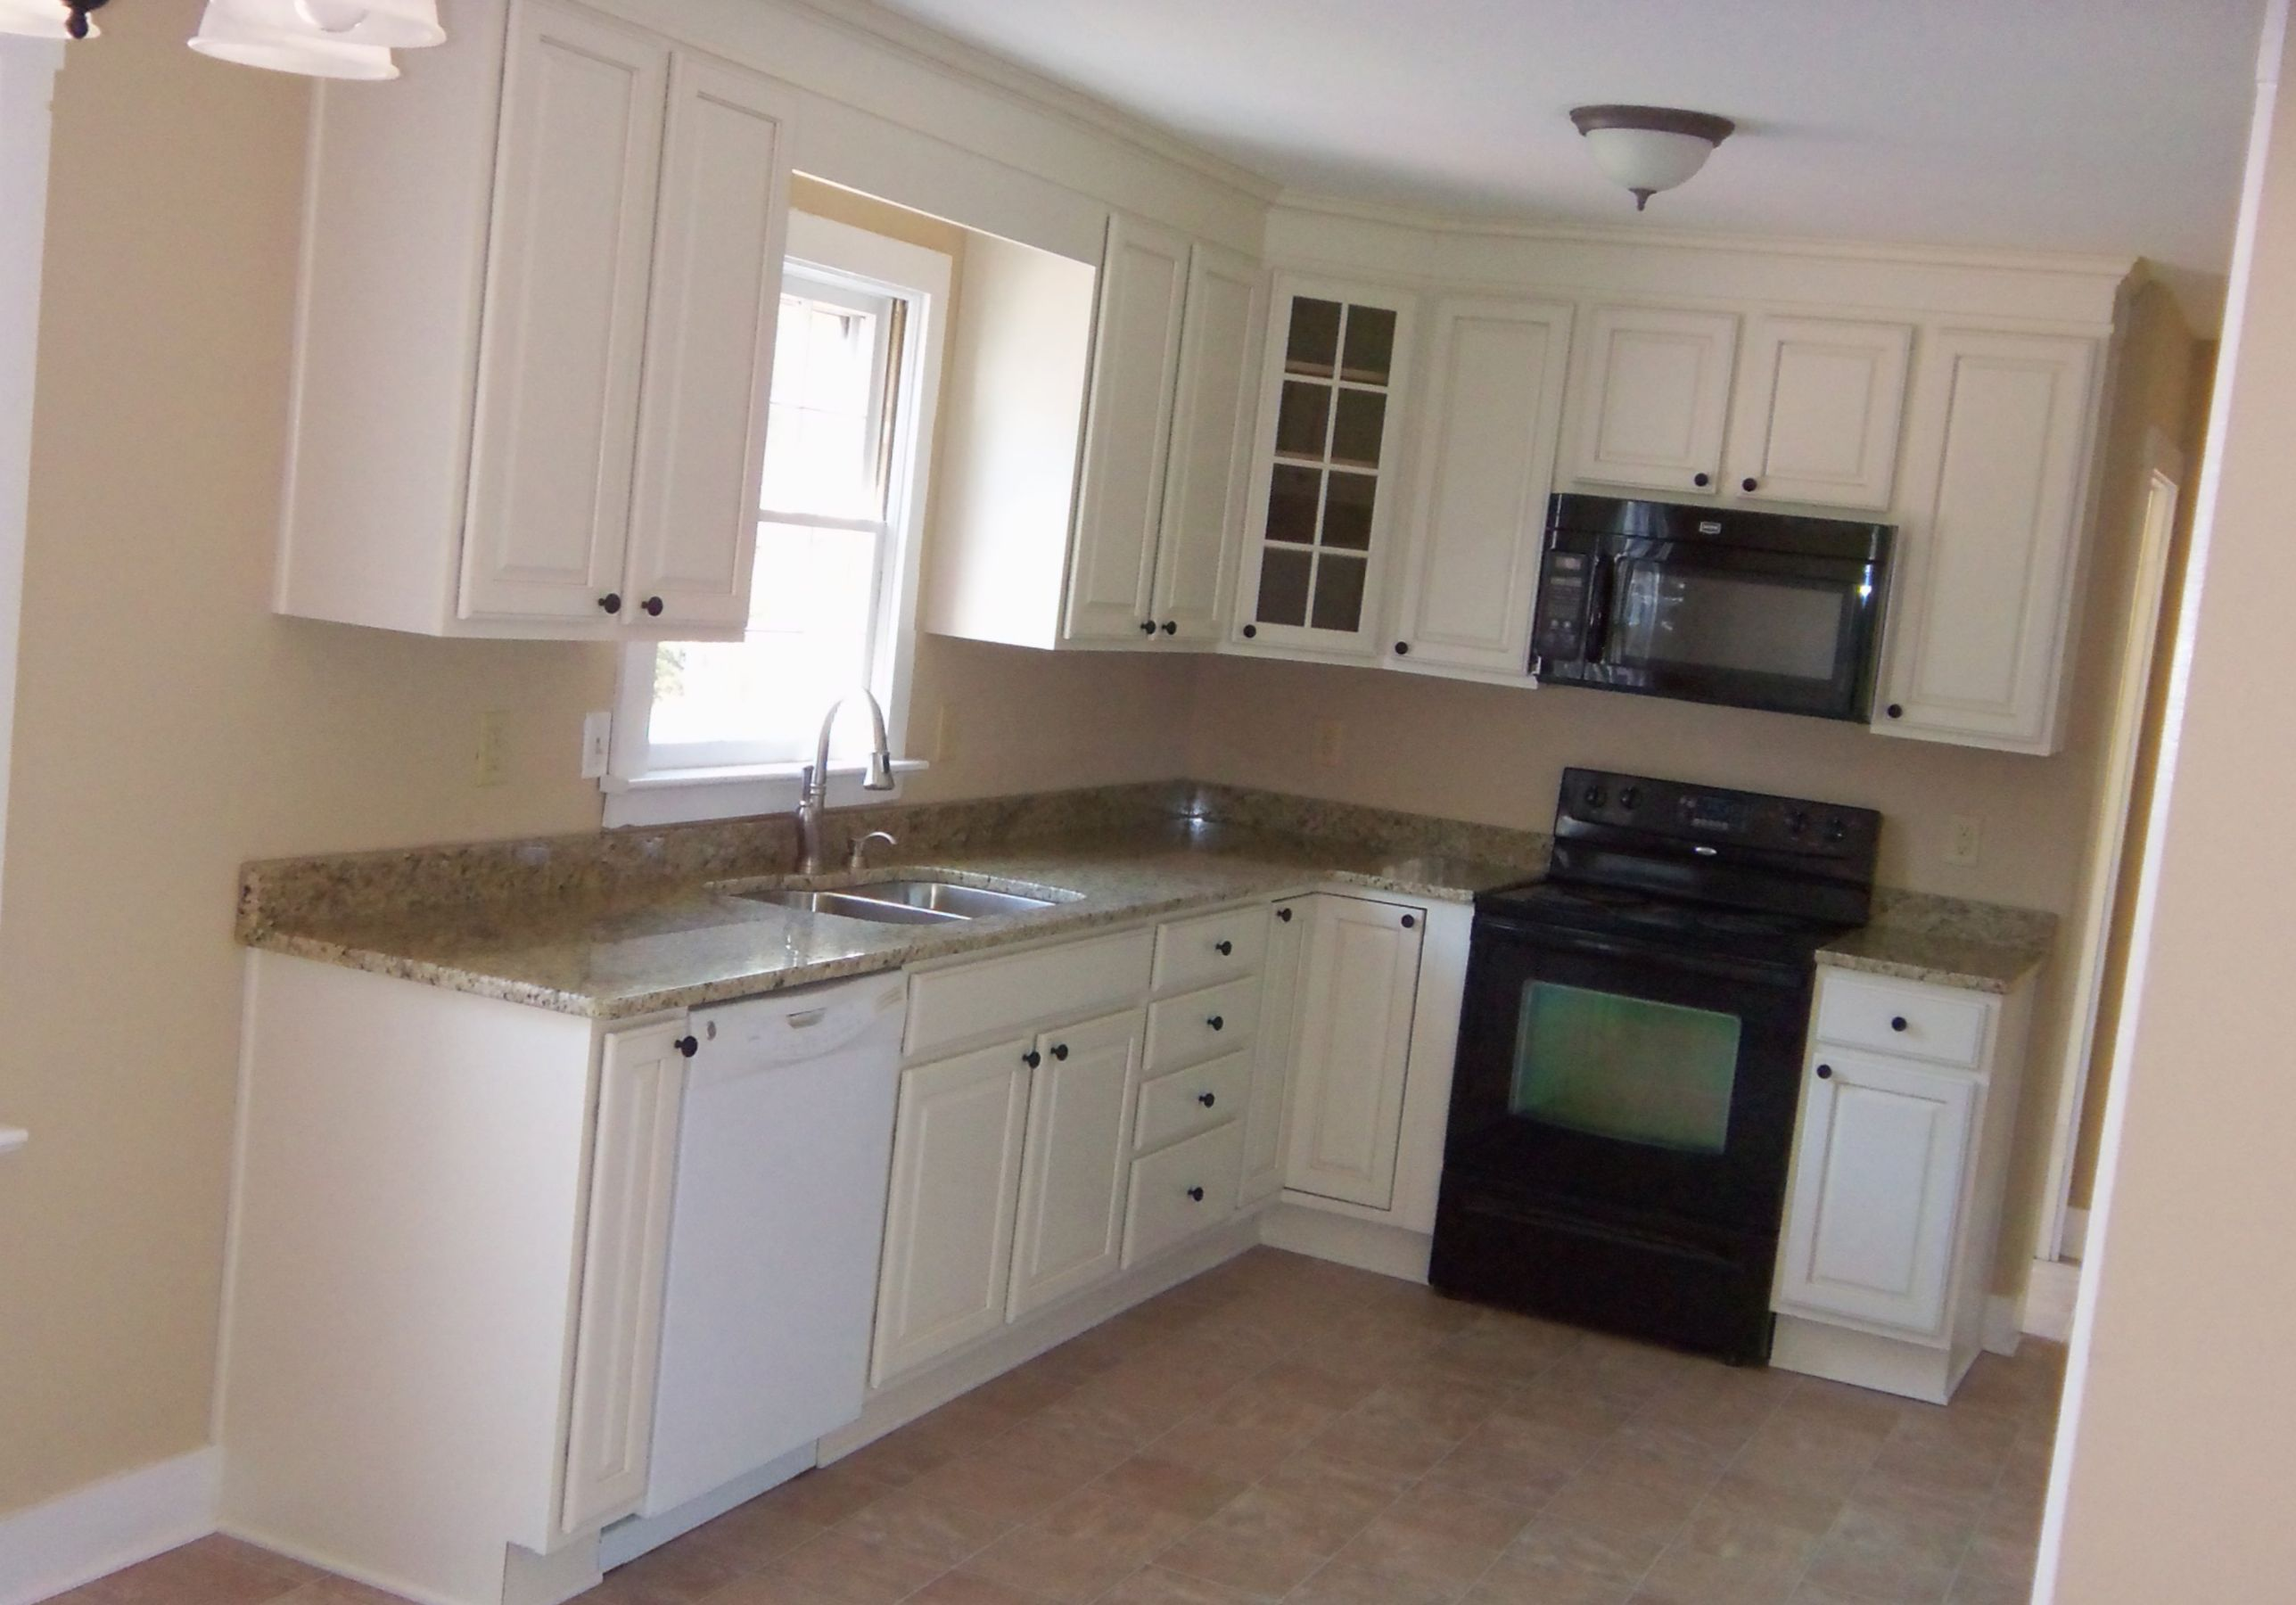 Small L Shaped Kitchens Designs Construct Small L Shaped Kitchen Designs Layouts Label